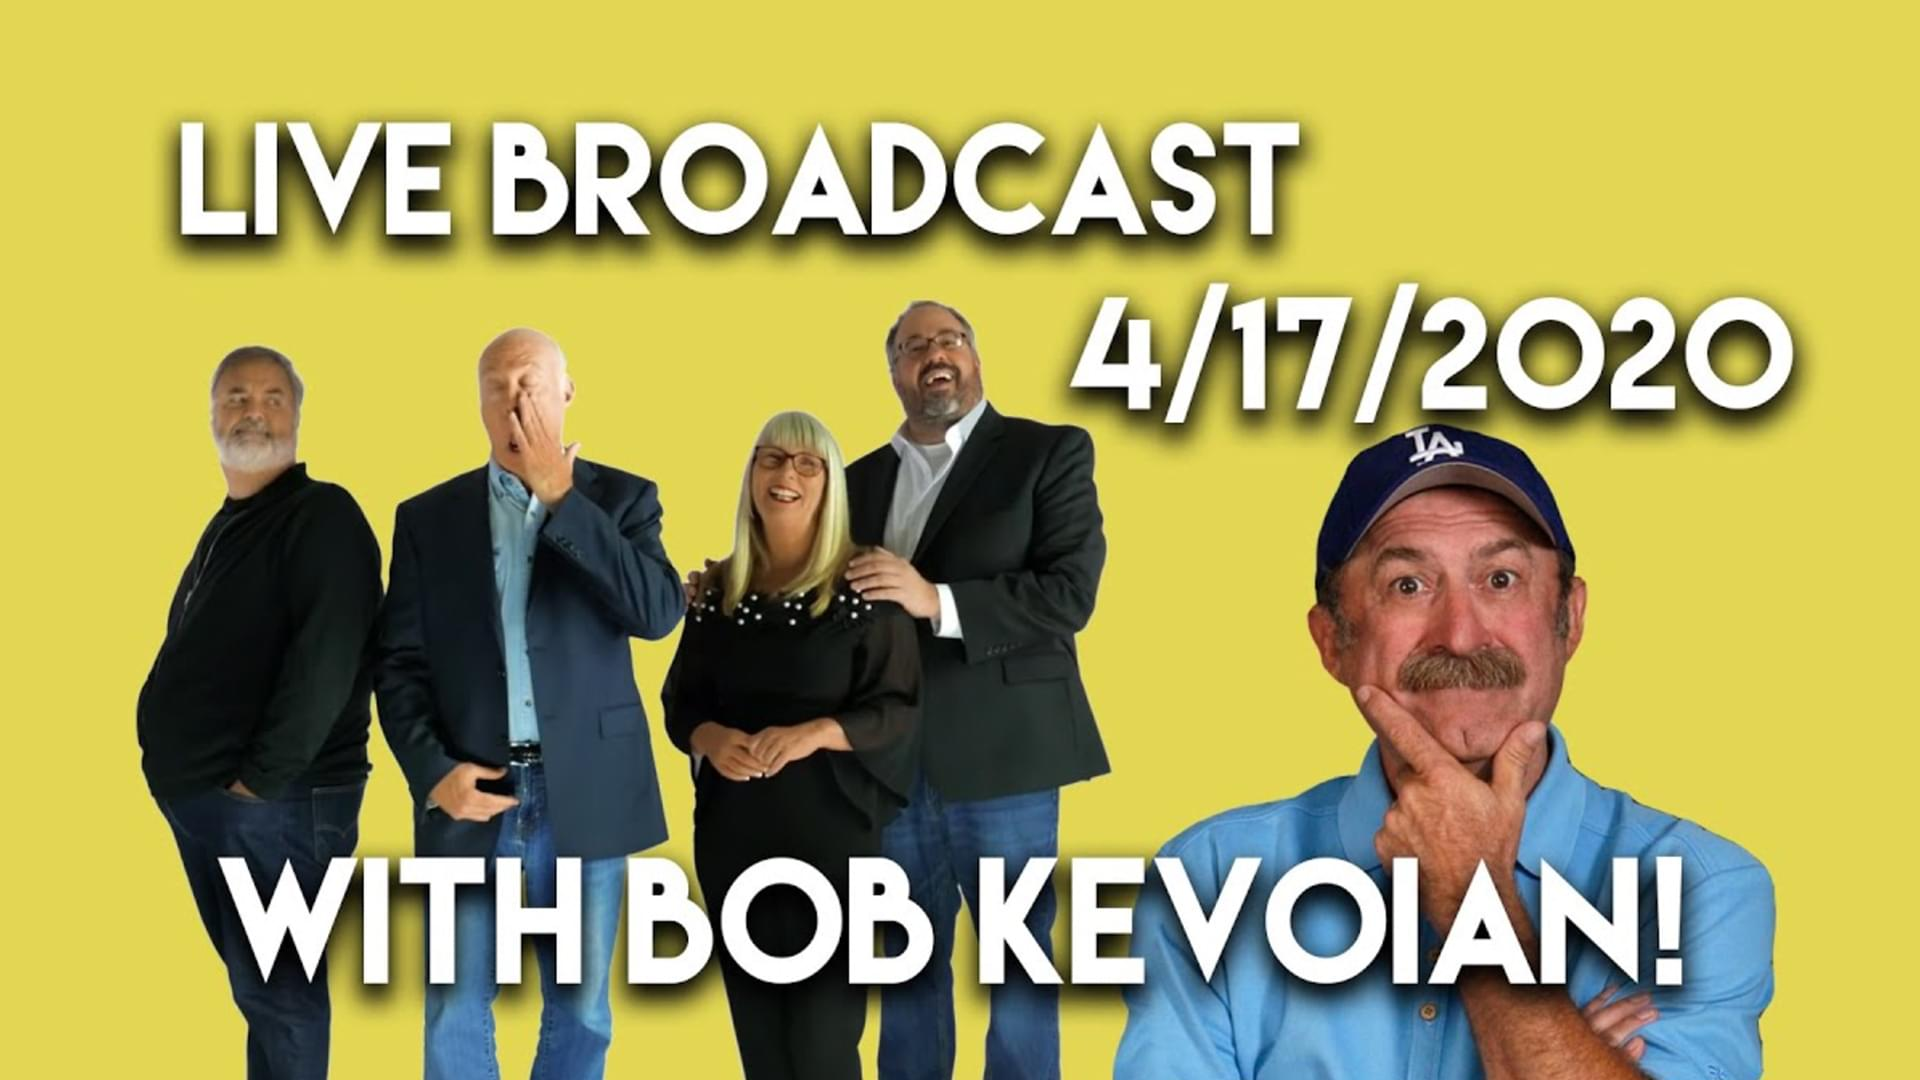 Watch the April 17th Live Broadcast with Bob Kevoian as guest!